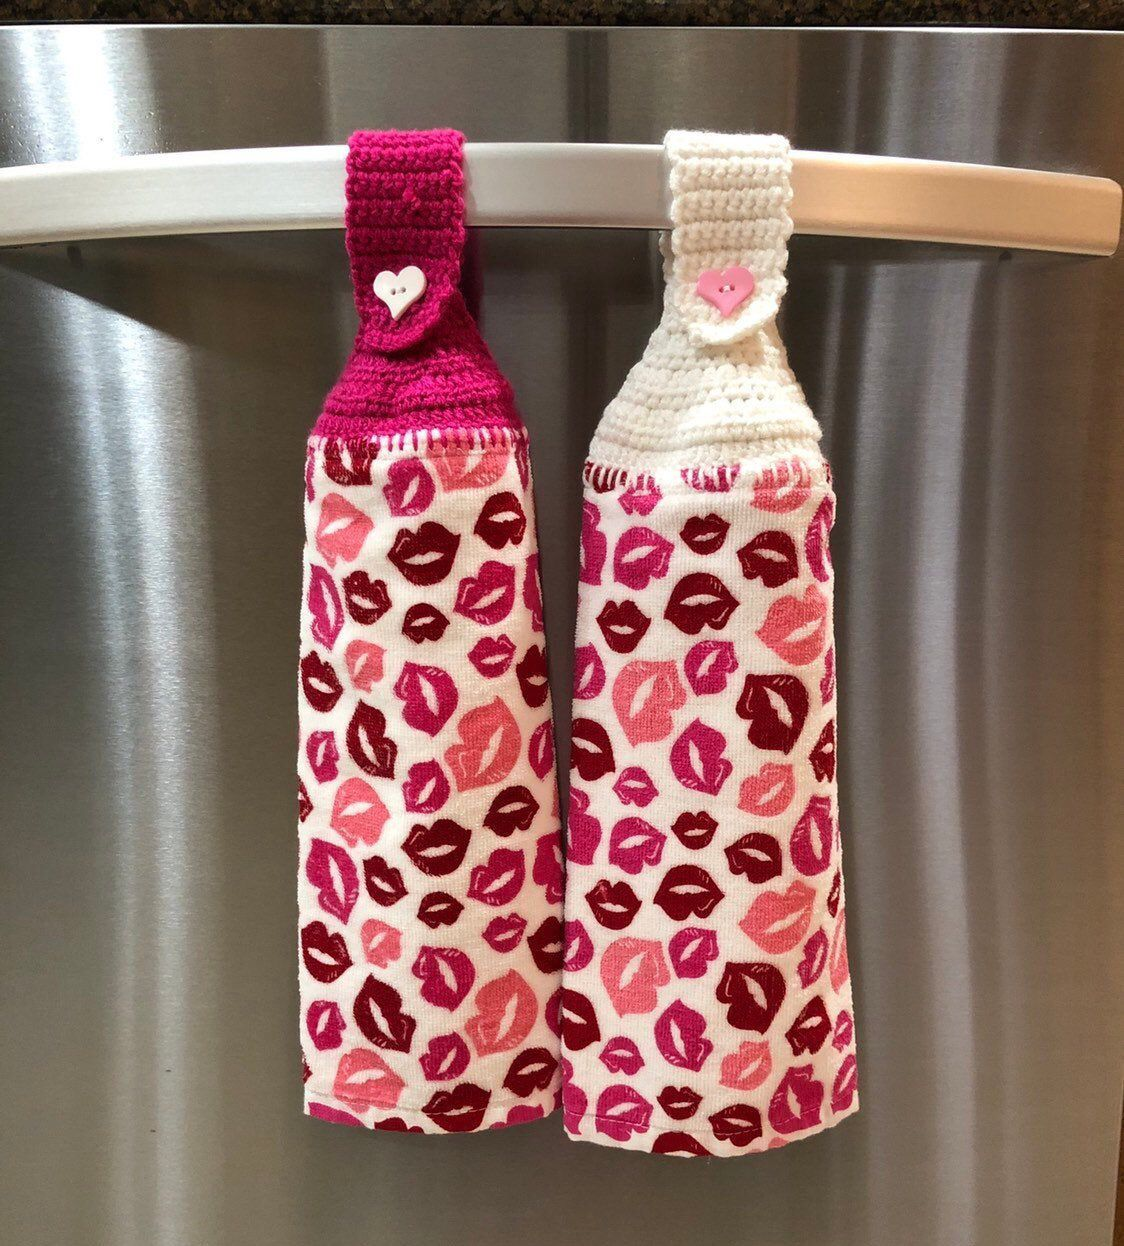 Crochet top kitchen towel, Hanging dish towel, Button top hand towel, Valentine's Day, Gift for her #dishtowels